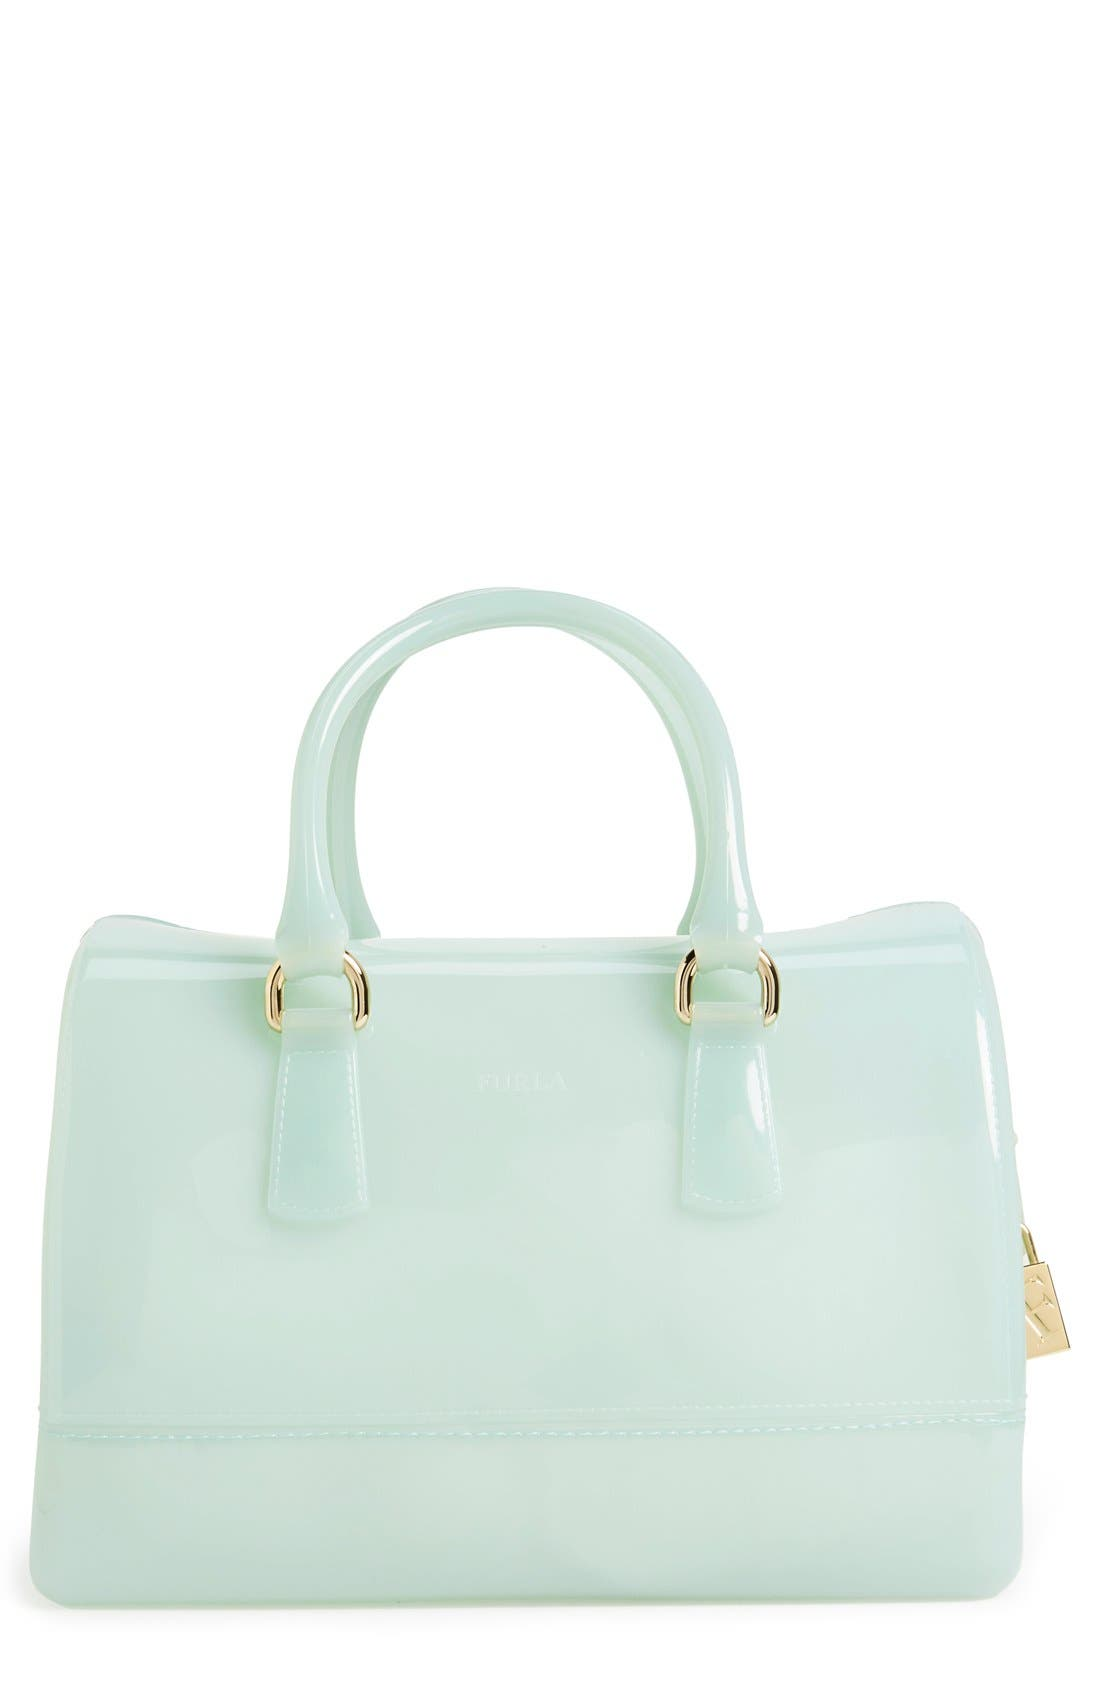 Alternate Image 1 Selected - Furla 'Candy' Satchel